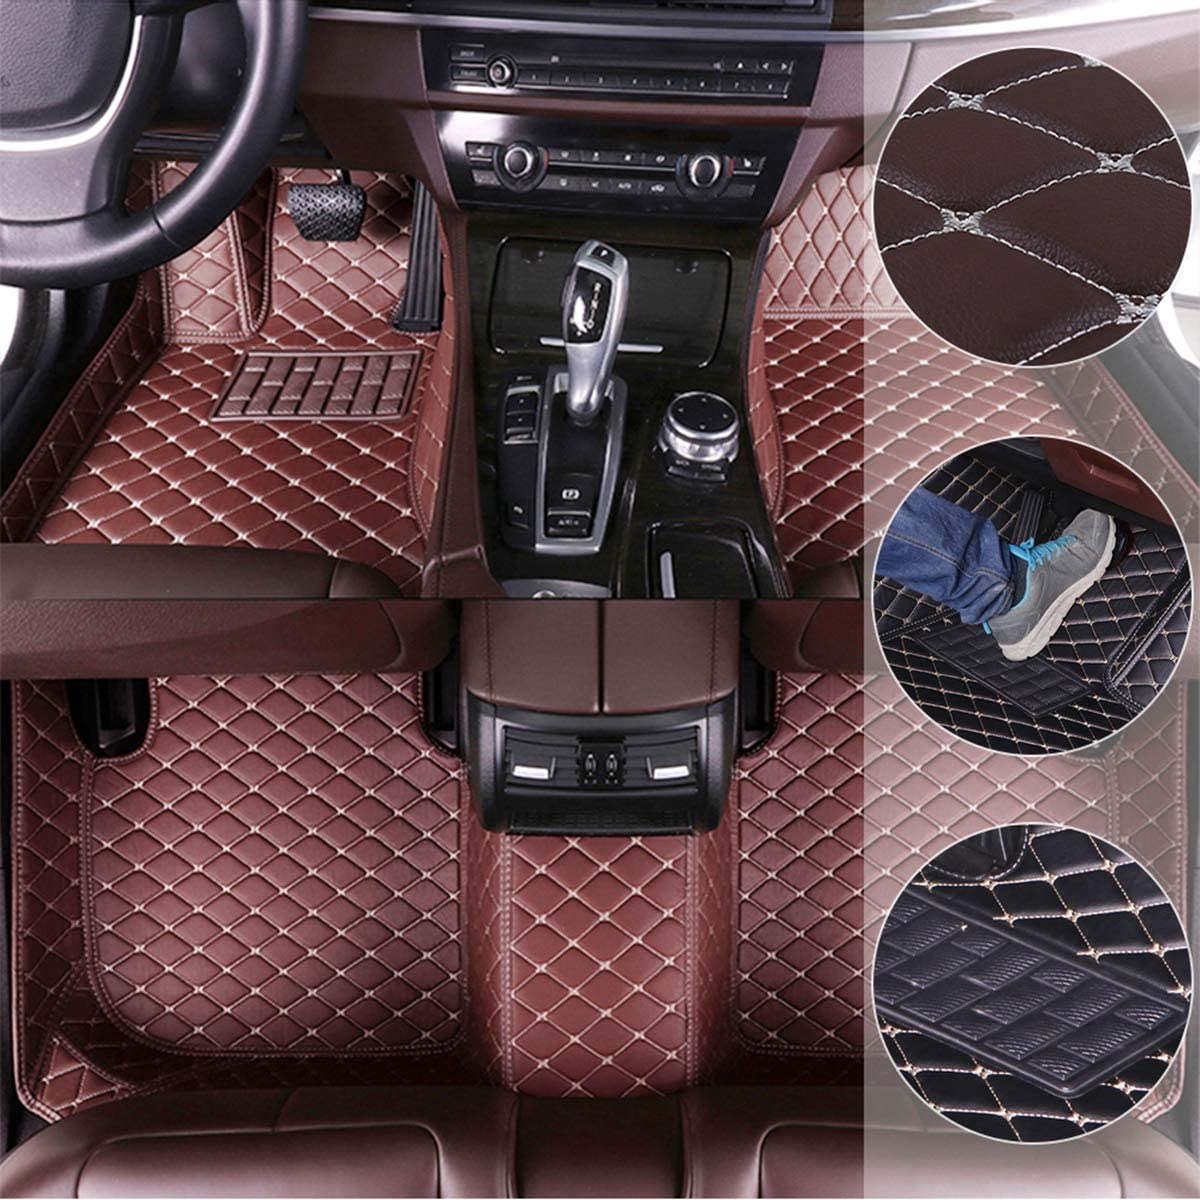 ytbmhhuoupx Car Floor Mats for BMW M3 4-Door 2007-2013 E30 F80 E90 E92 Custom Leather mat Full Surrounded Protection Waterpoof Non-Slip Set Left Drive Coffee